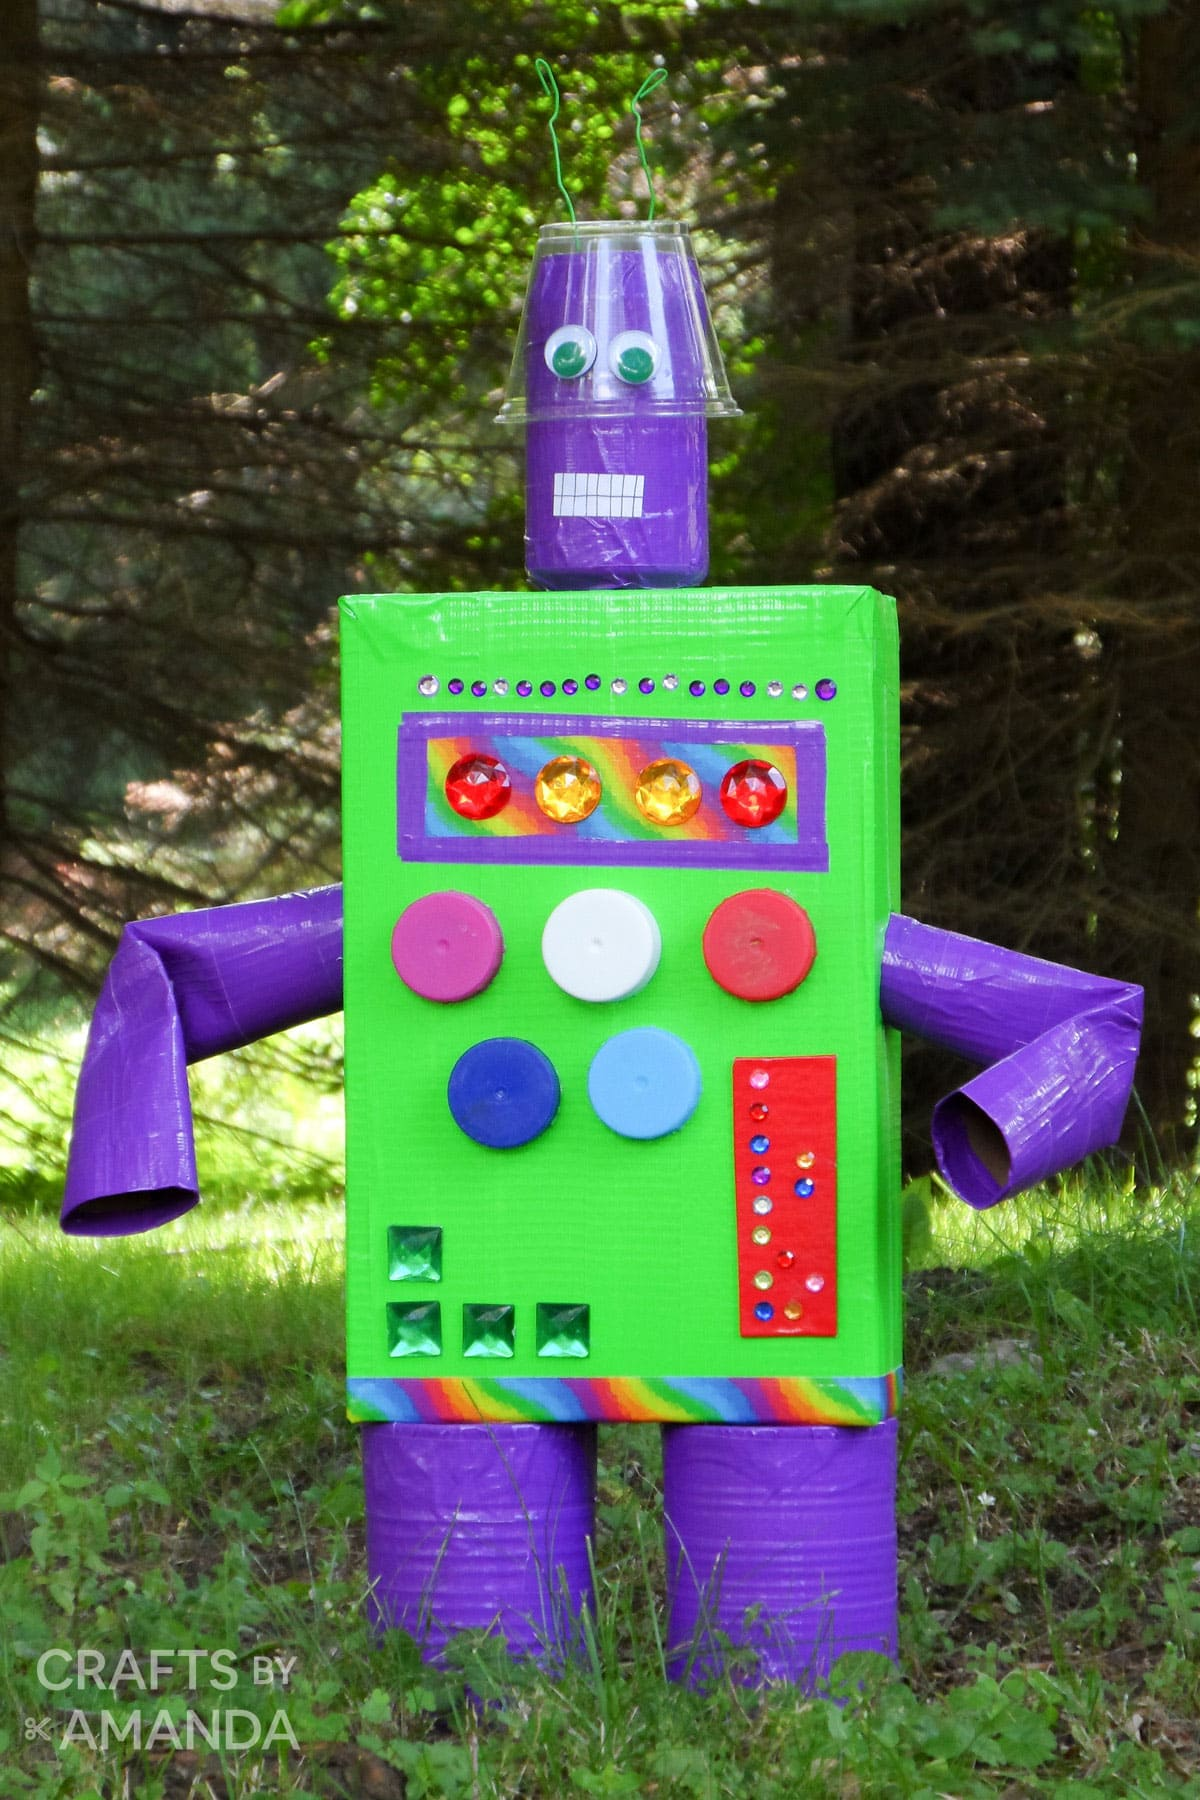 cereal box duck tape robot in yard